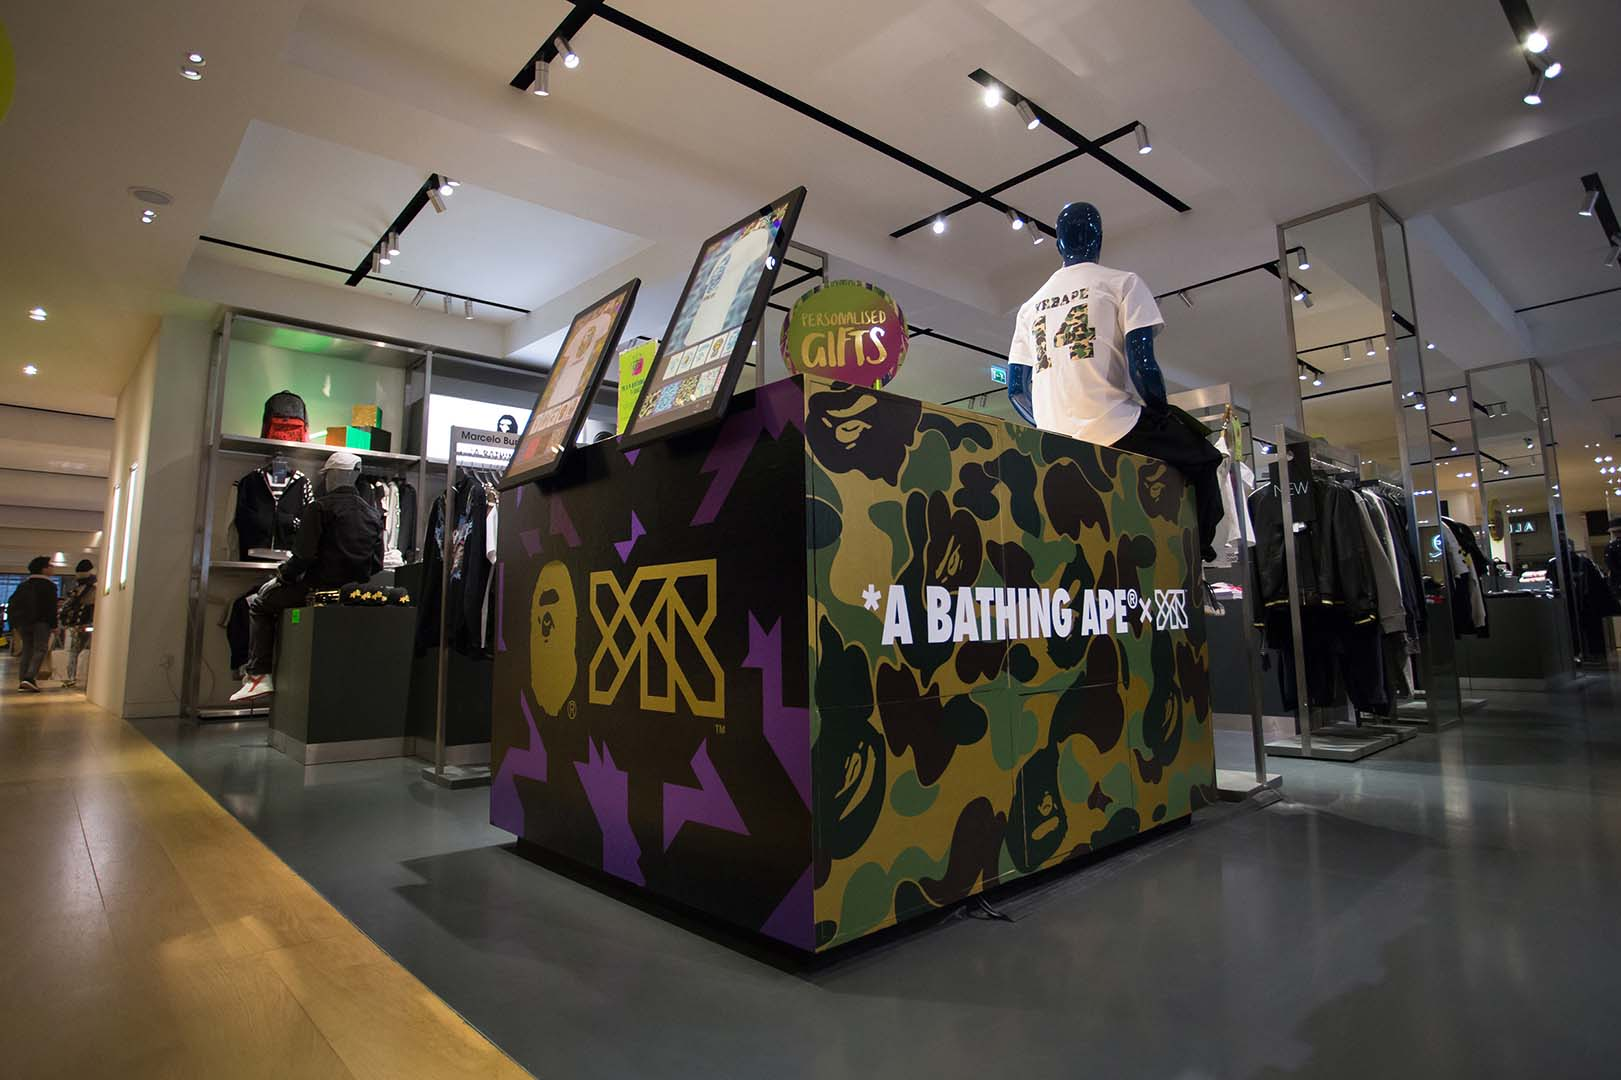 YR Store x A Bathing Ape x Selfridges